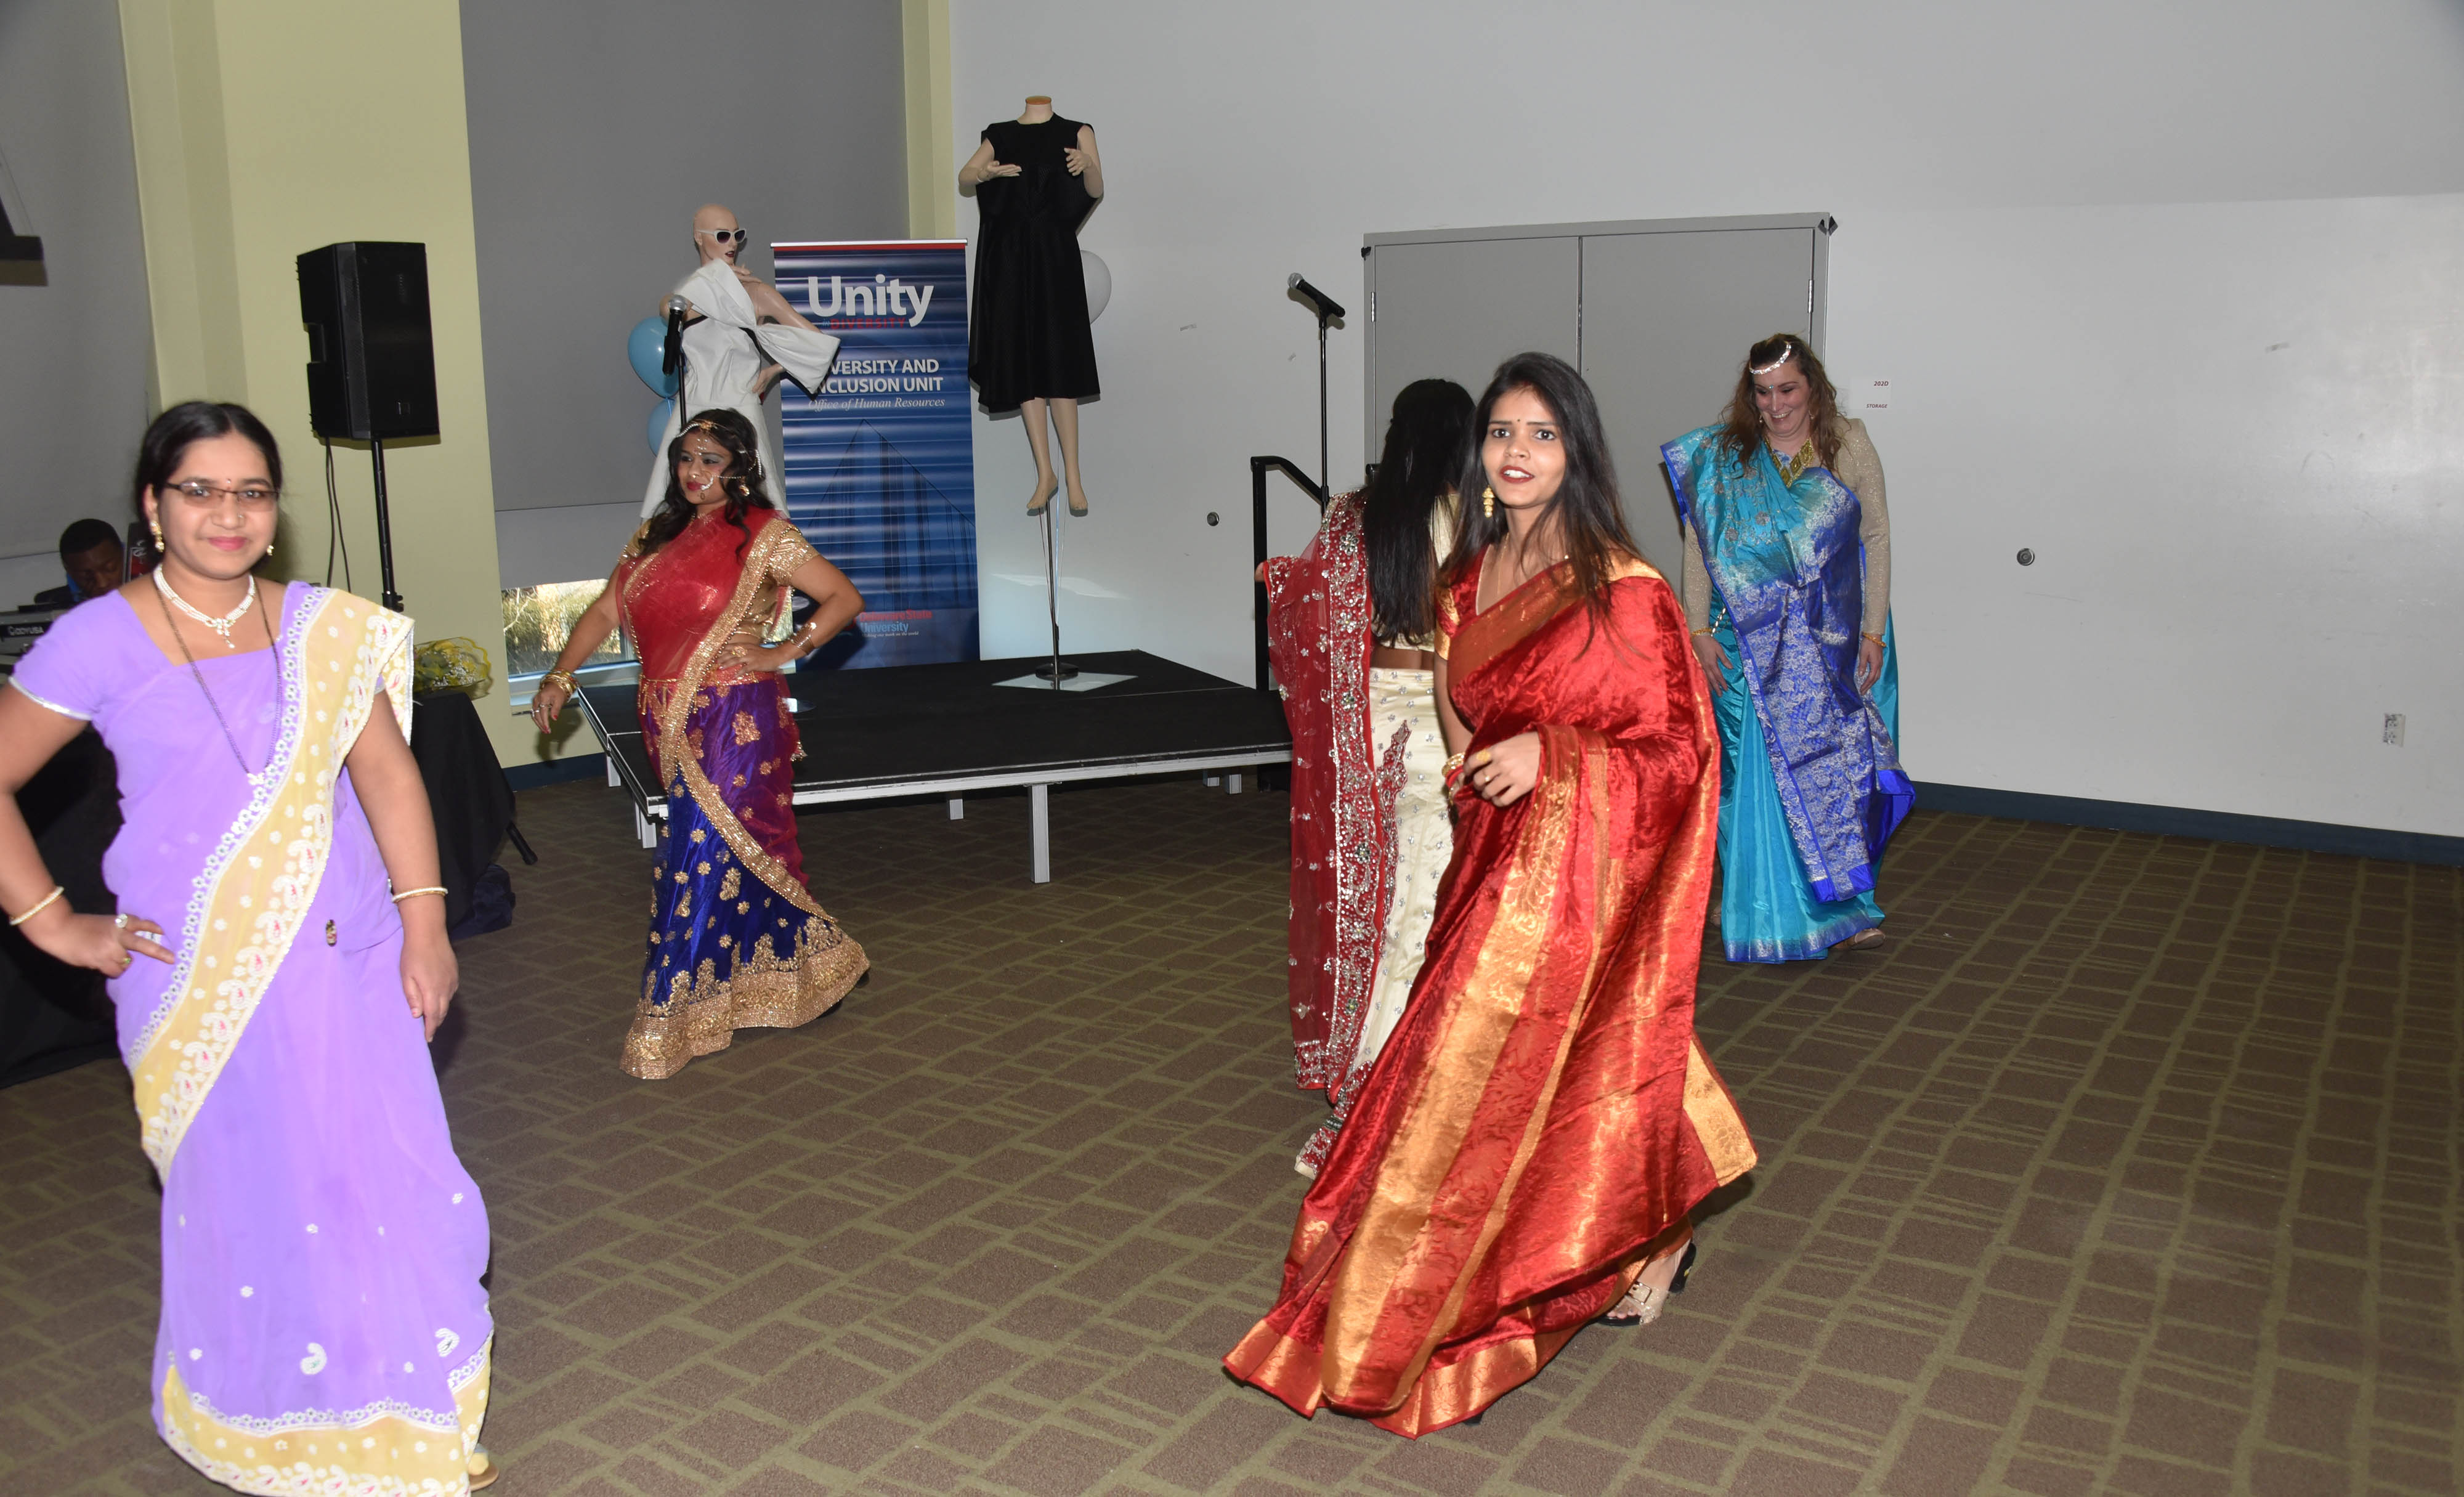 A group of East Indian women performed a dance and fashion presentation during the 2019 Unity Day events in the MLK Jr. Student Center.